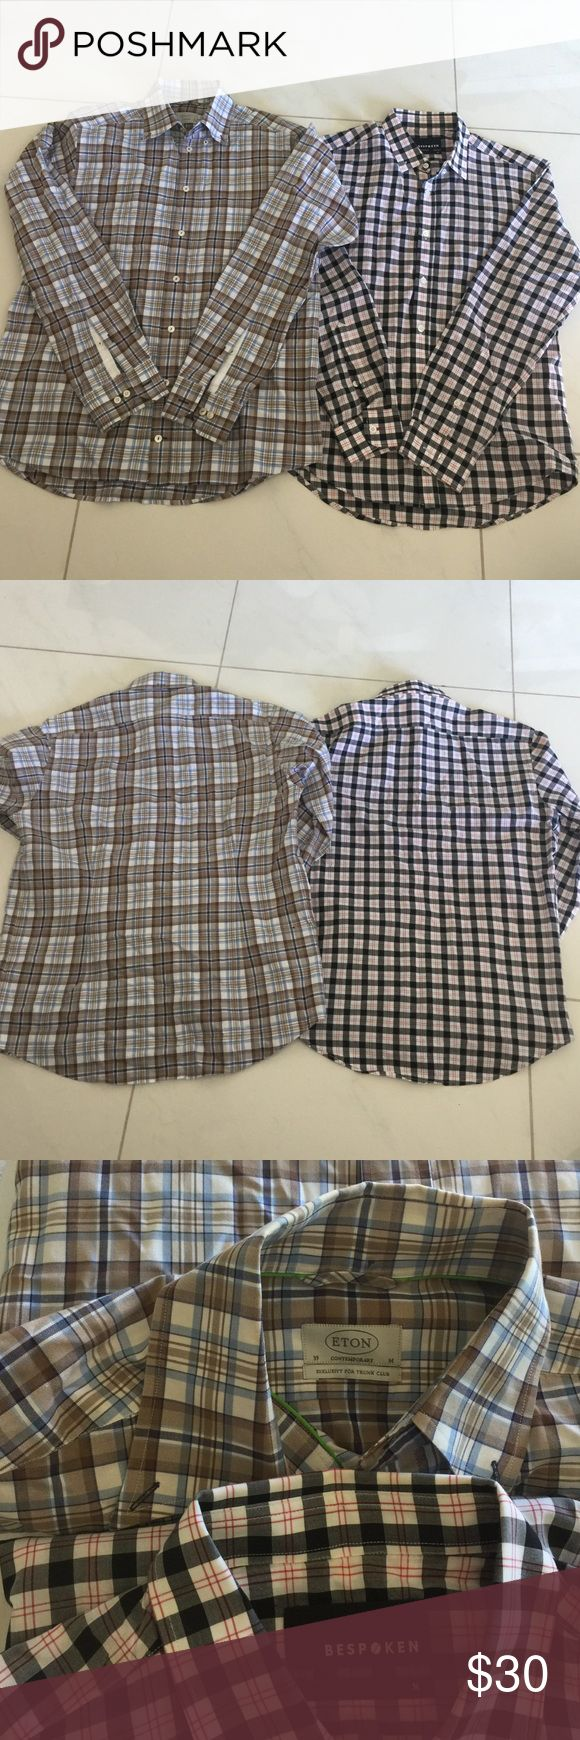 Two Trunk Club Dress Shirts Lot of 2 size M men's dress shirt. One from Bespoken for Trunk Club, the other Etonian for Trunk Club. Both in excellent condition. No stains or damage Shirts Dress Shirts